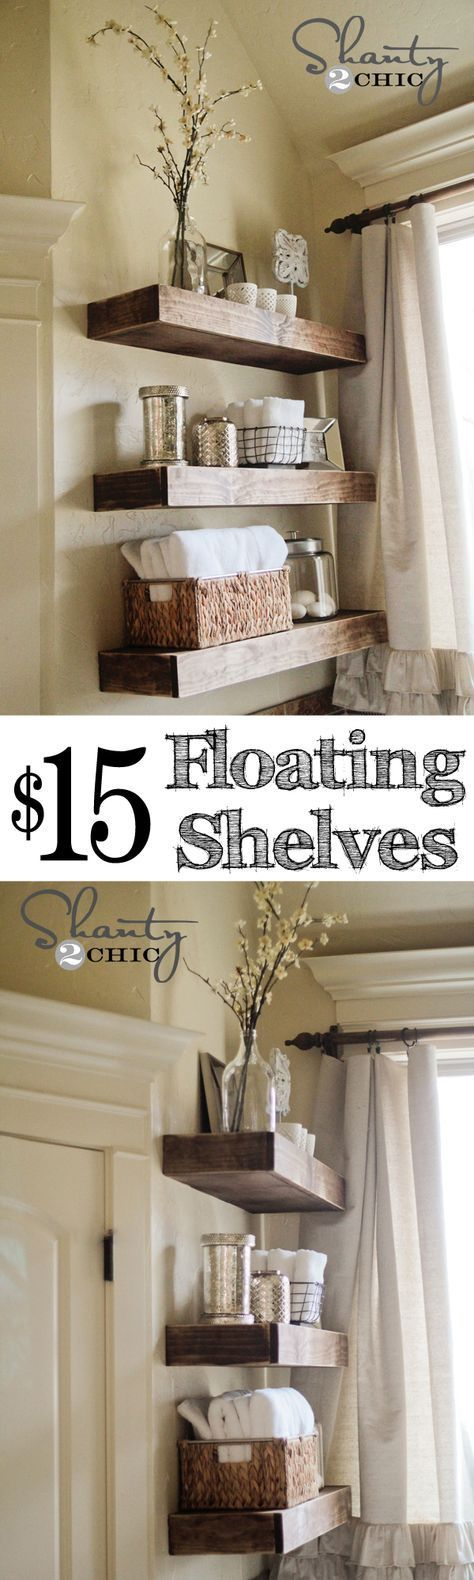 super cute diy floating shelves these are easy and cheap too wwwshanty - Floating Shelves In Living Room